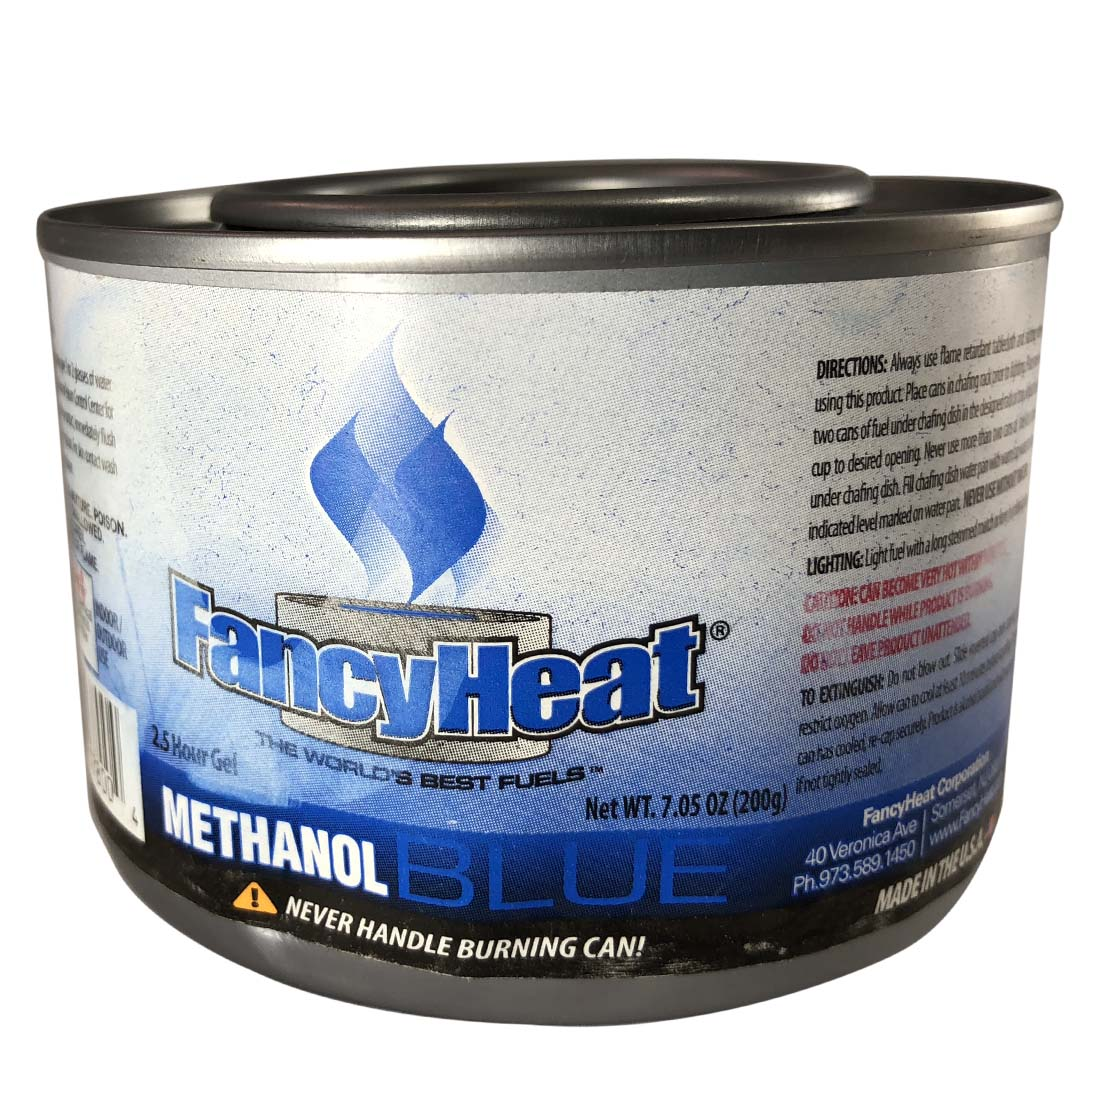 View FANCY HEAT FUEL STERNO 7.05 OZ (200g) 2.5 HOUR METHANOL GEL ***CANNOT BE SOLD IN PENNSYLVANIA***